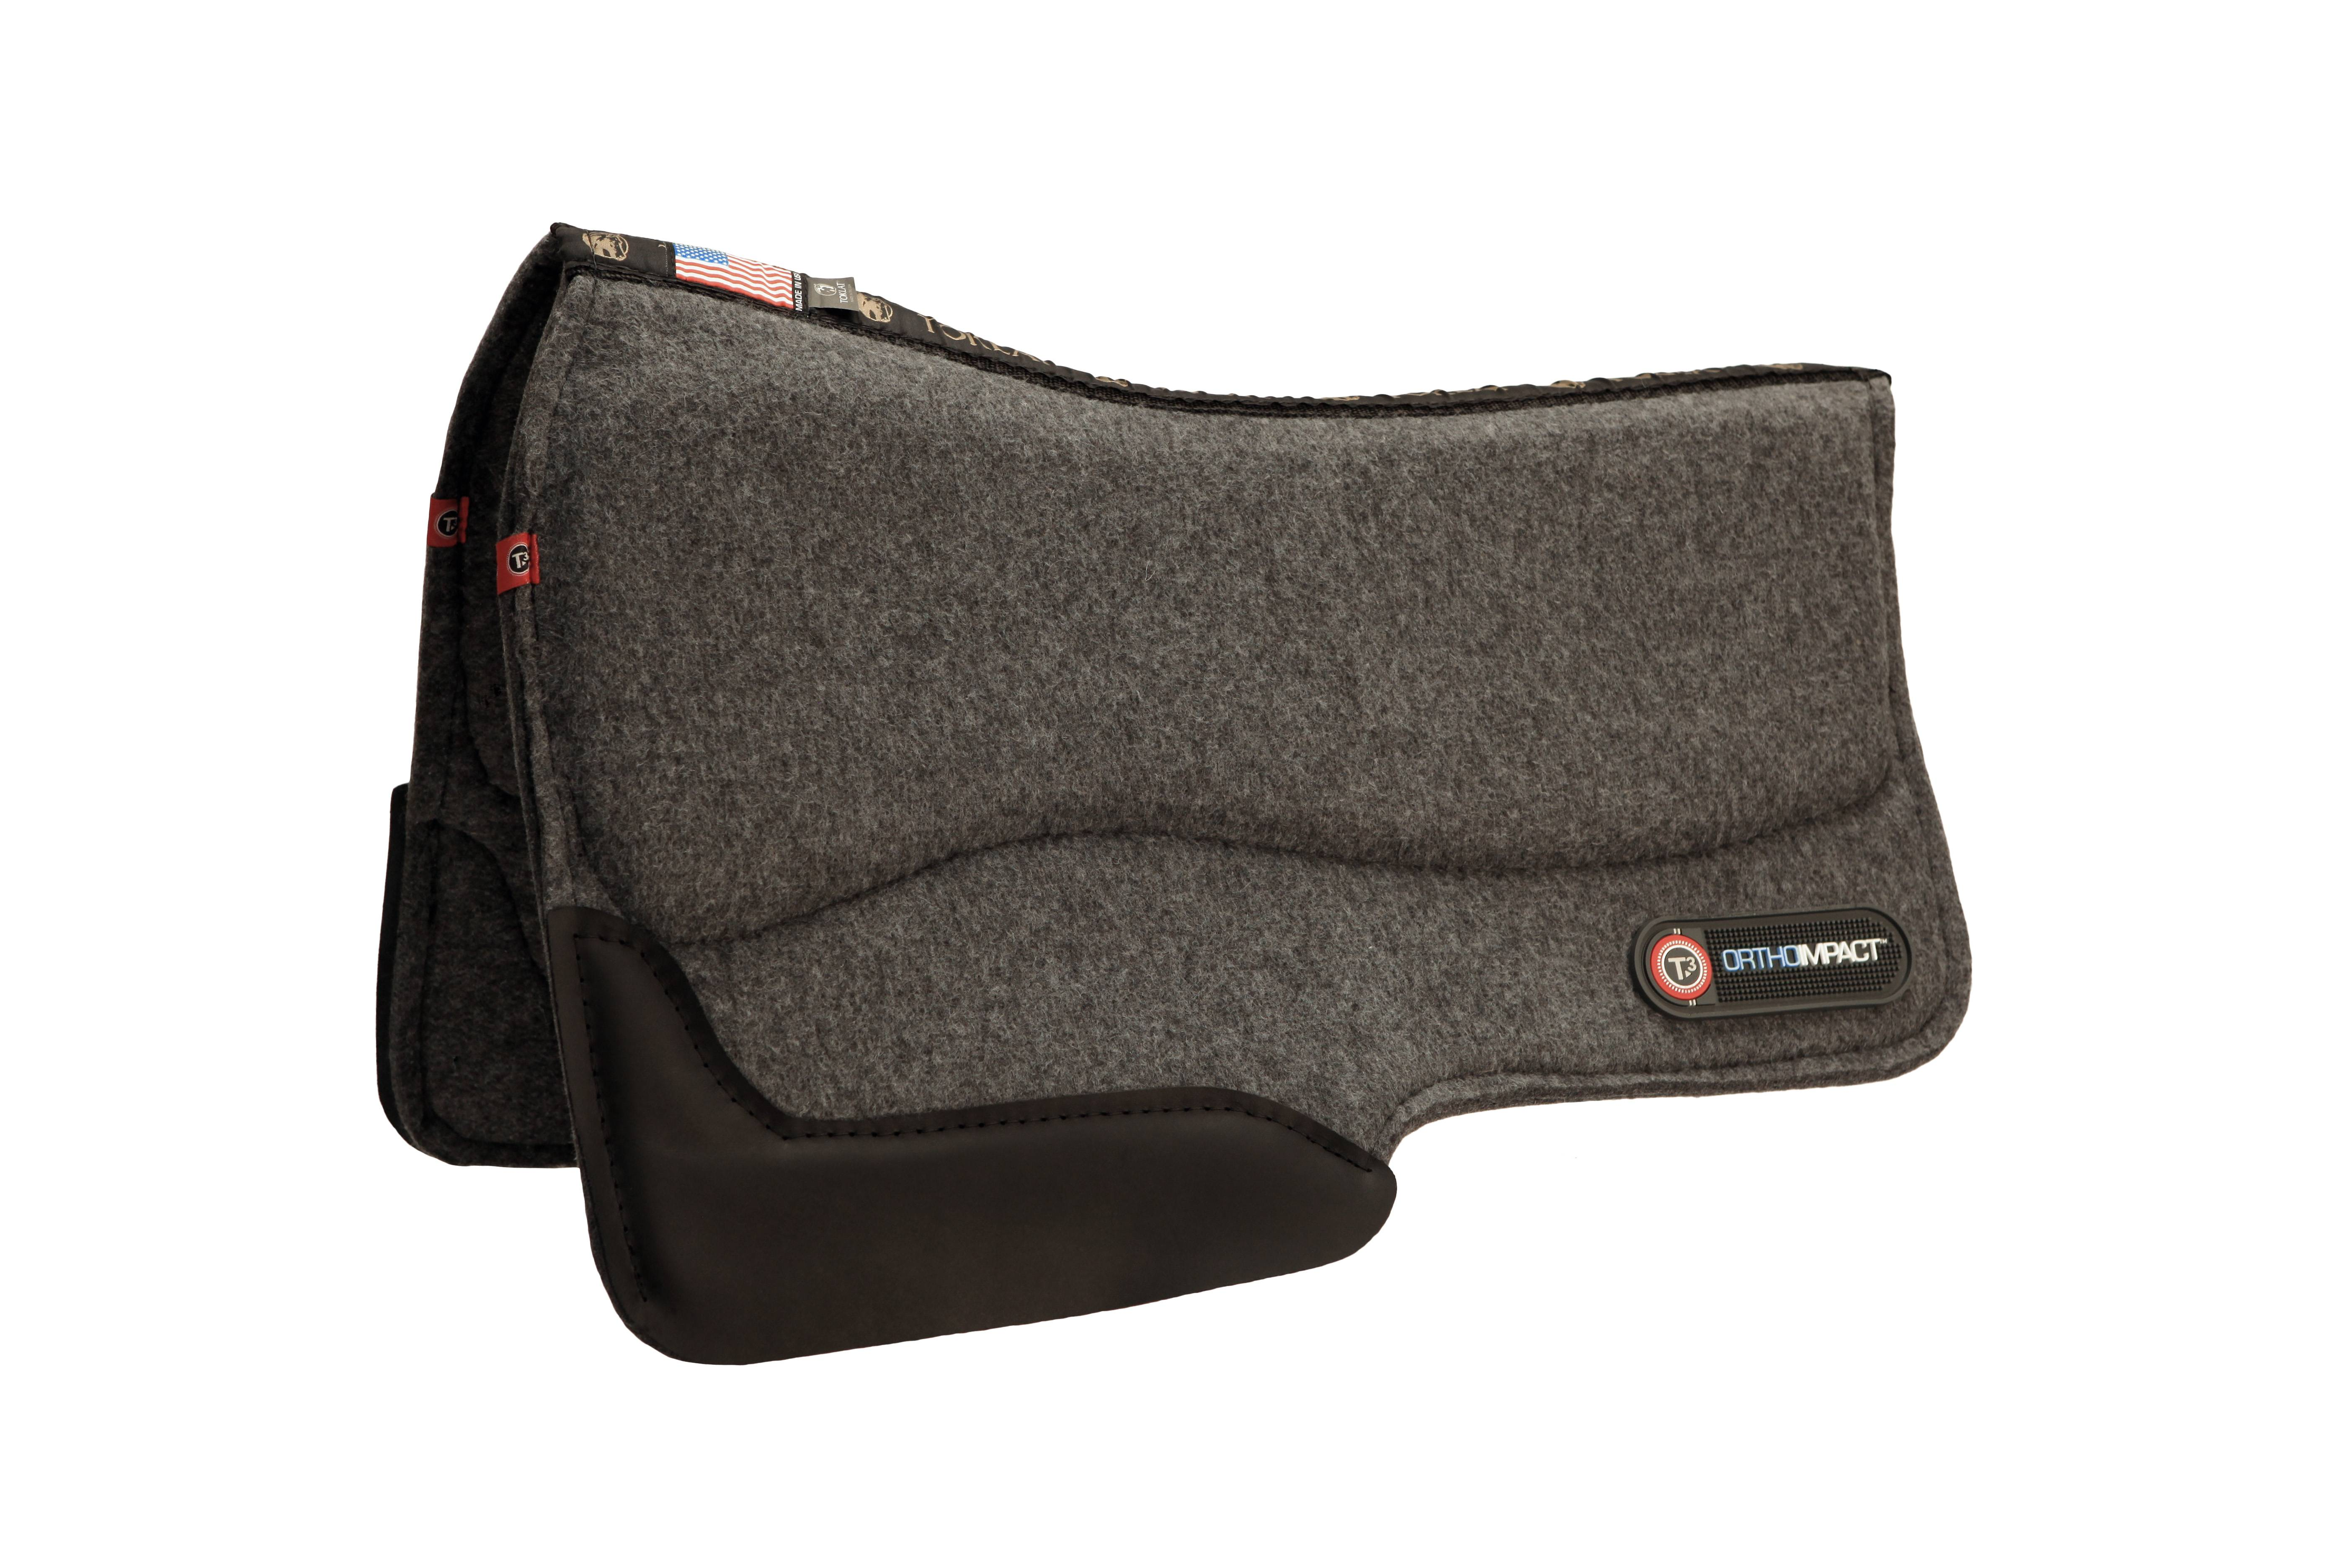 T3 Western Wool Felt Barrel Pad with Ortho-Impact 3/4''